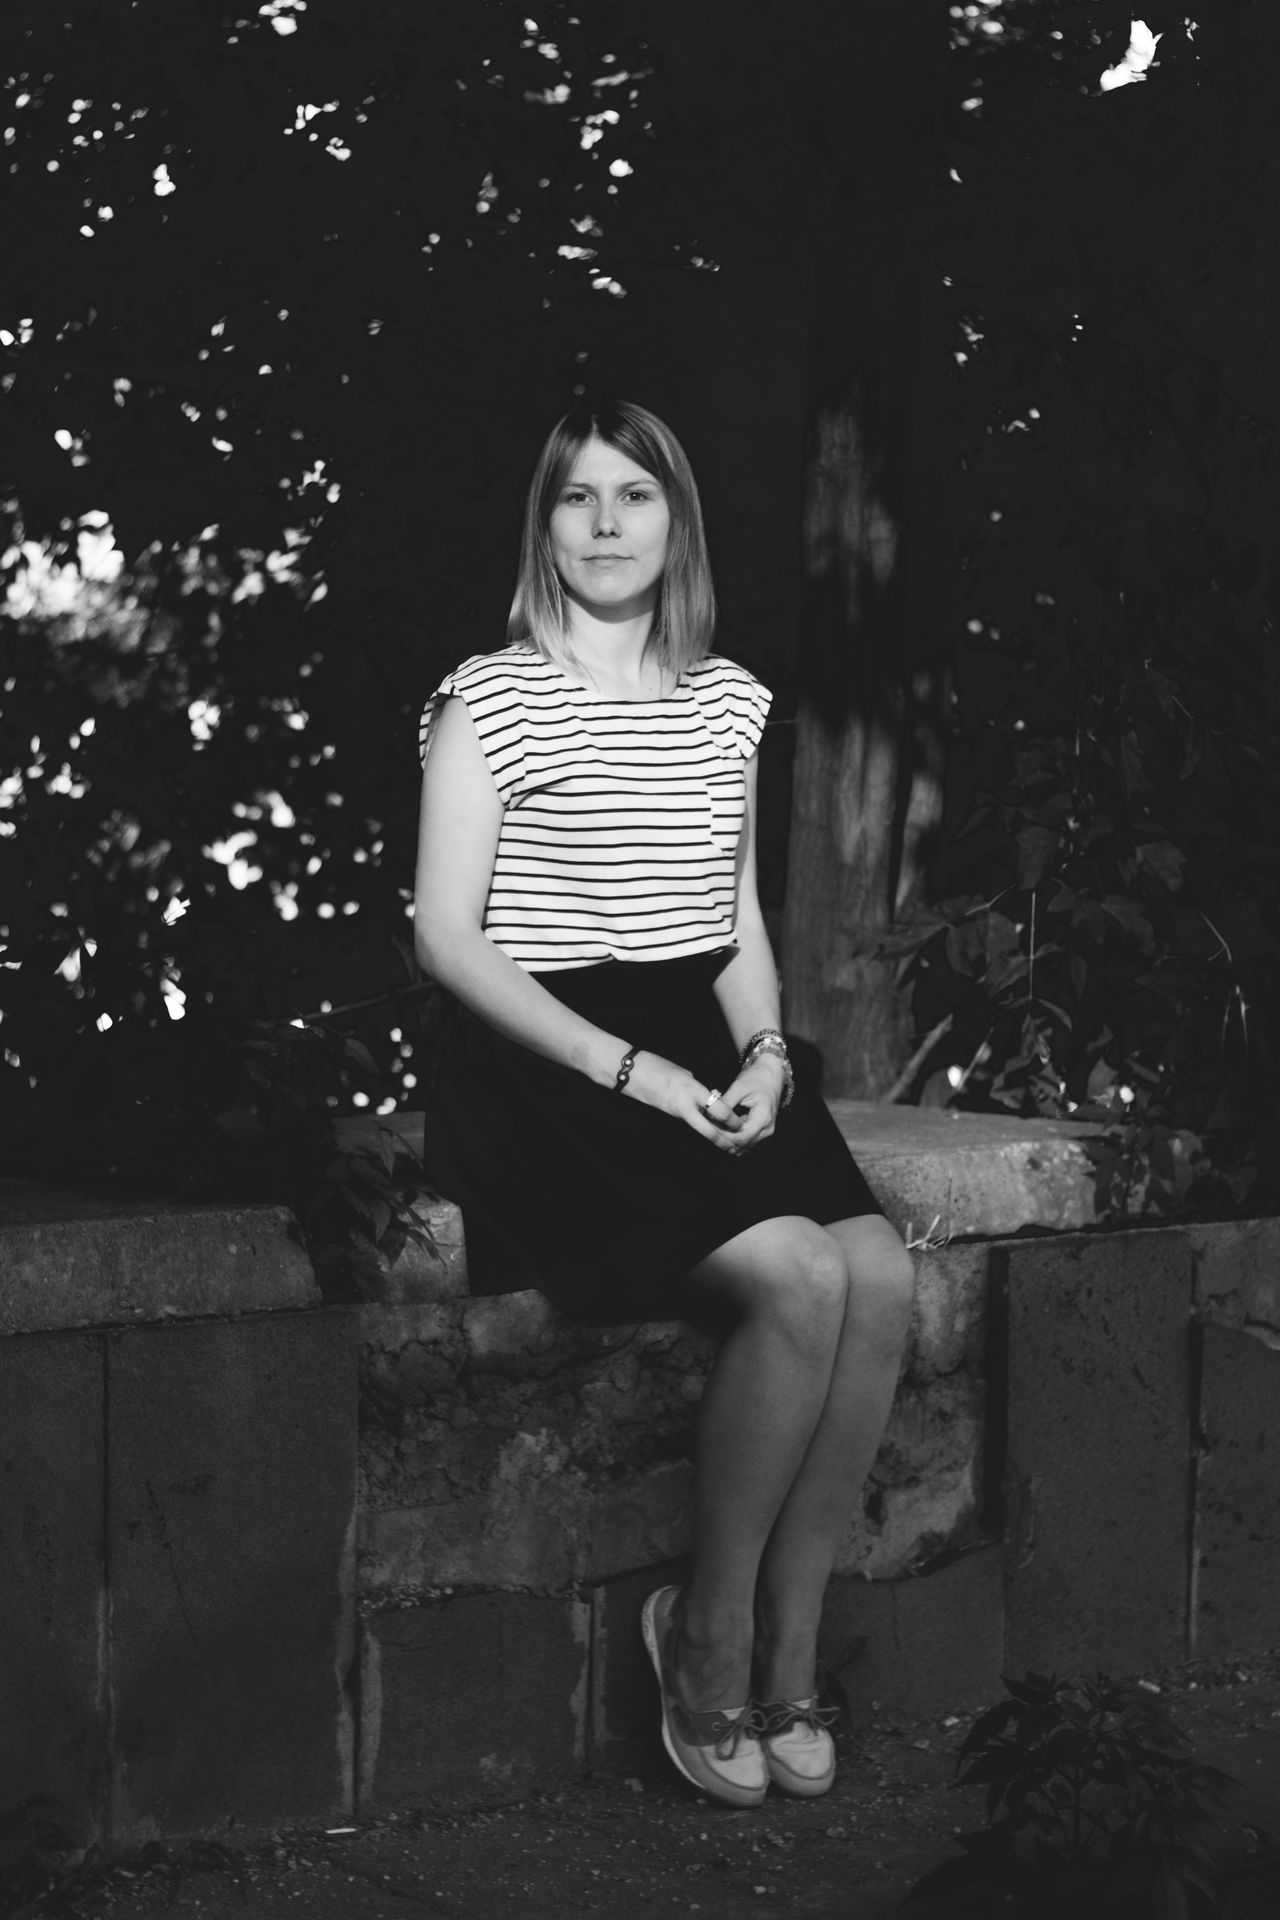 Full length portrait of young woman sitting on retaining wall against trees